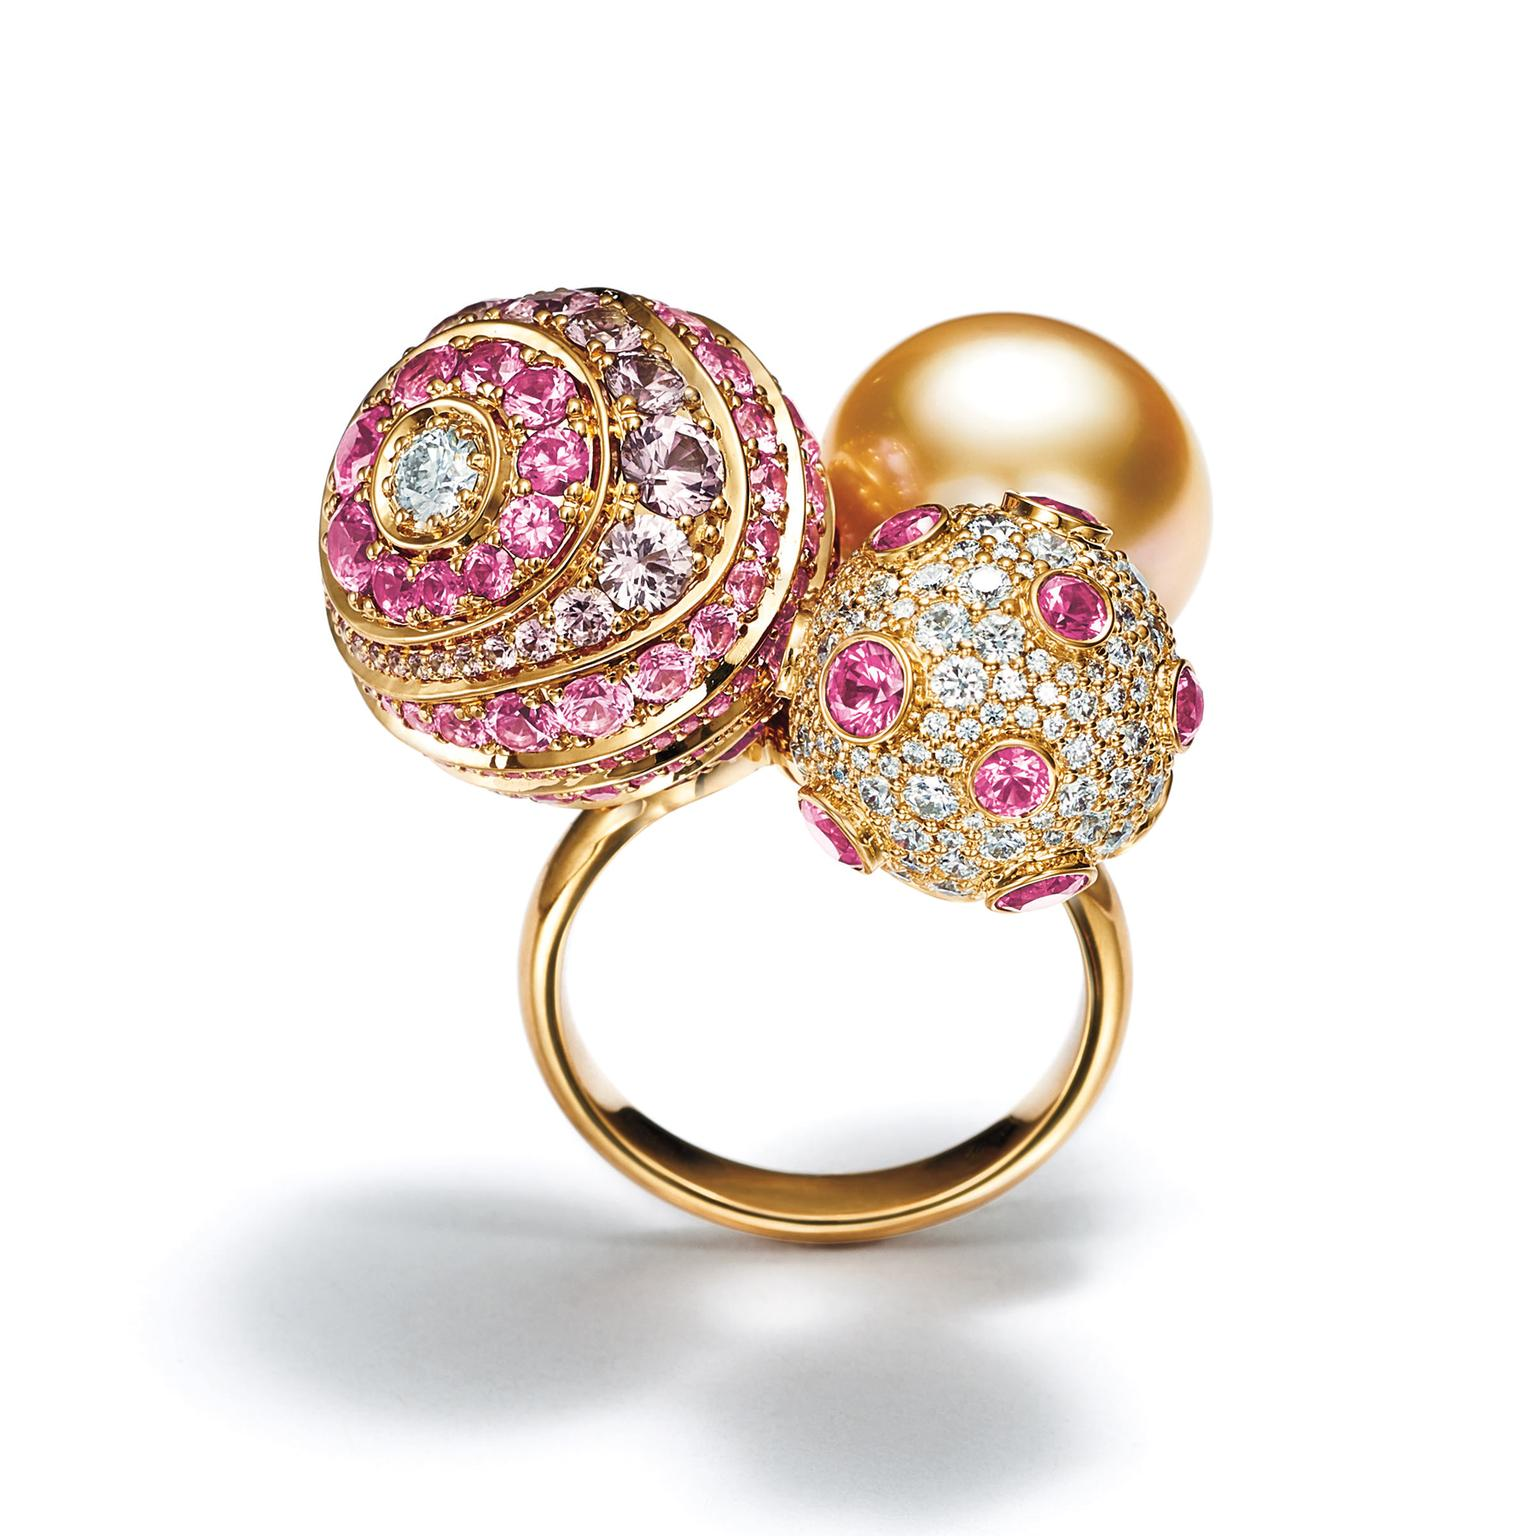 Tiffany & Co Masterpieces golden pearl pink sapphire diamond ring